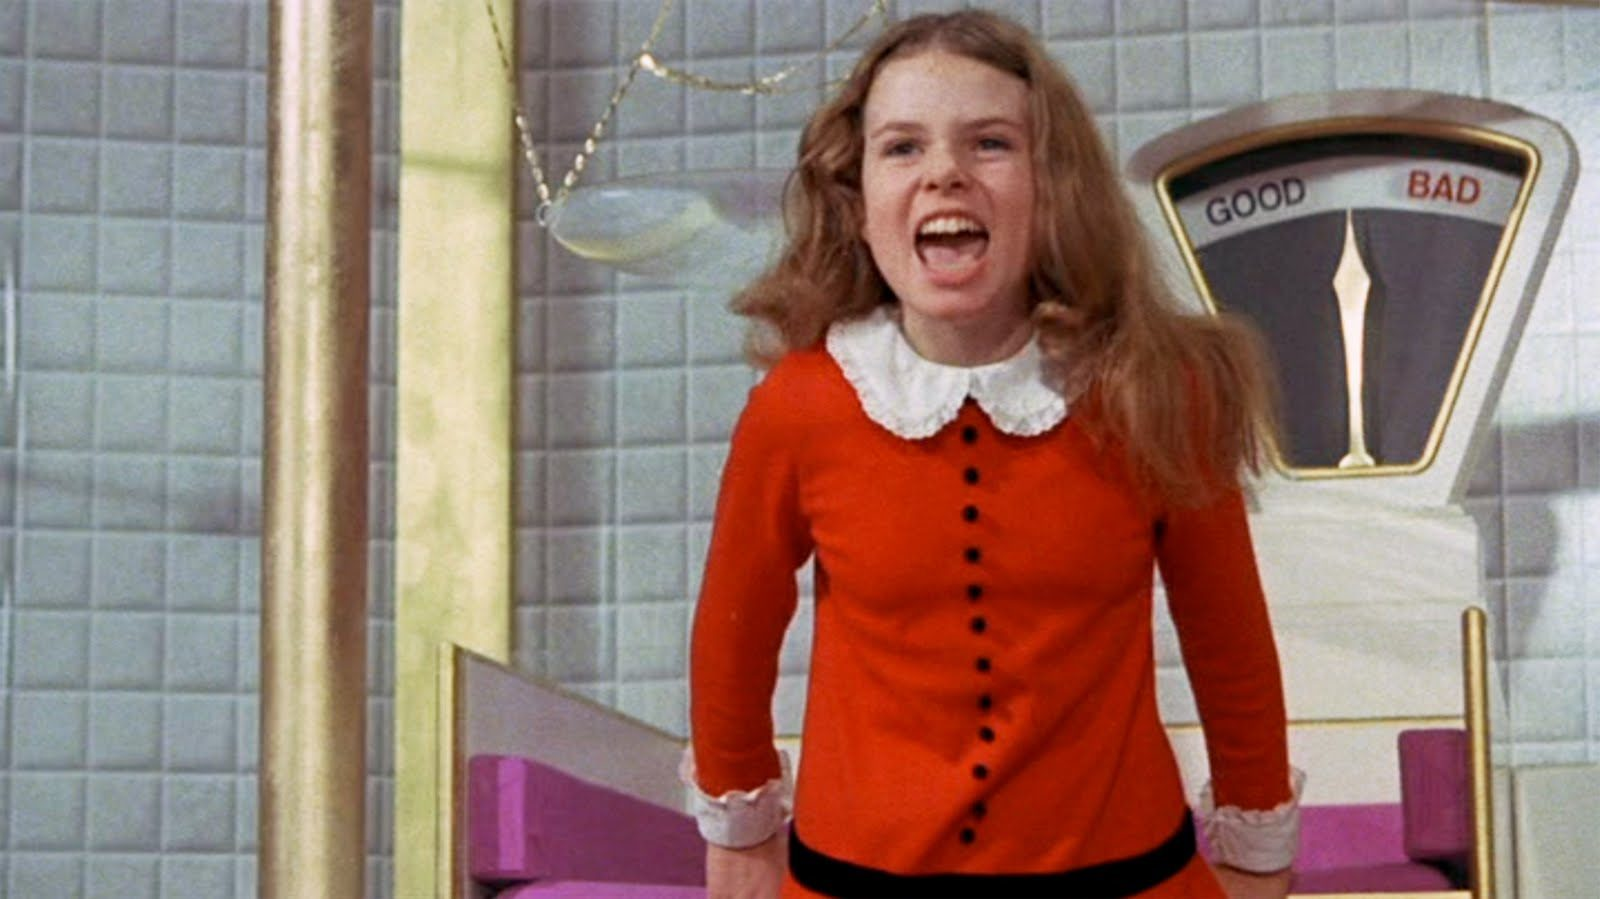 Veruca Salt from Willy Wonka & the Chocolate Factory